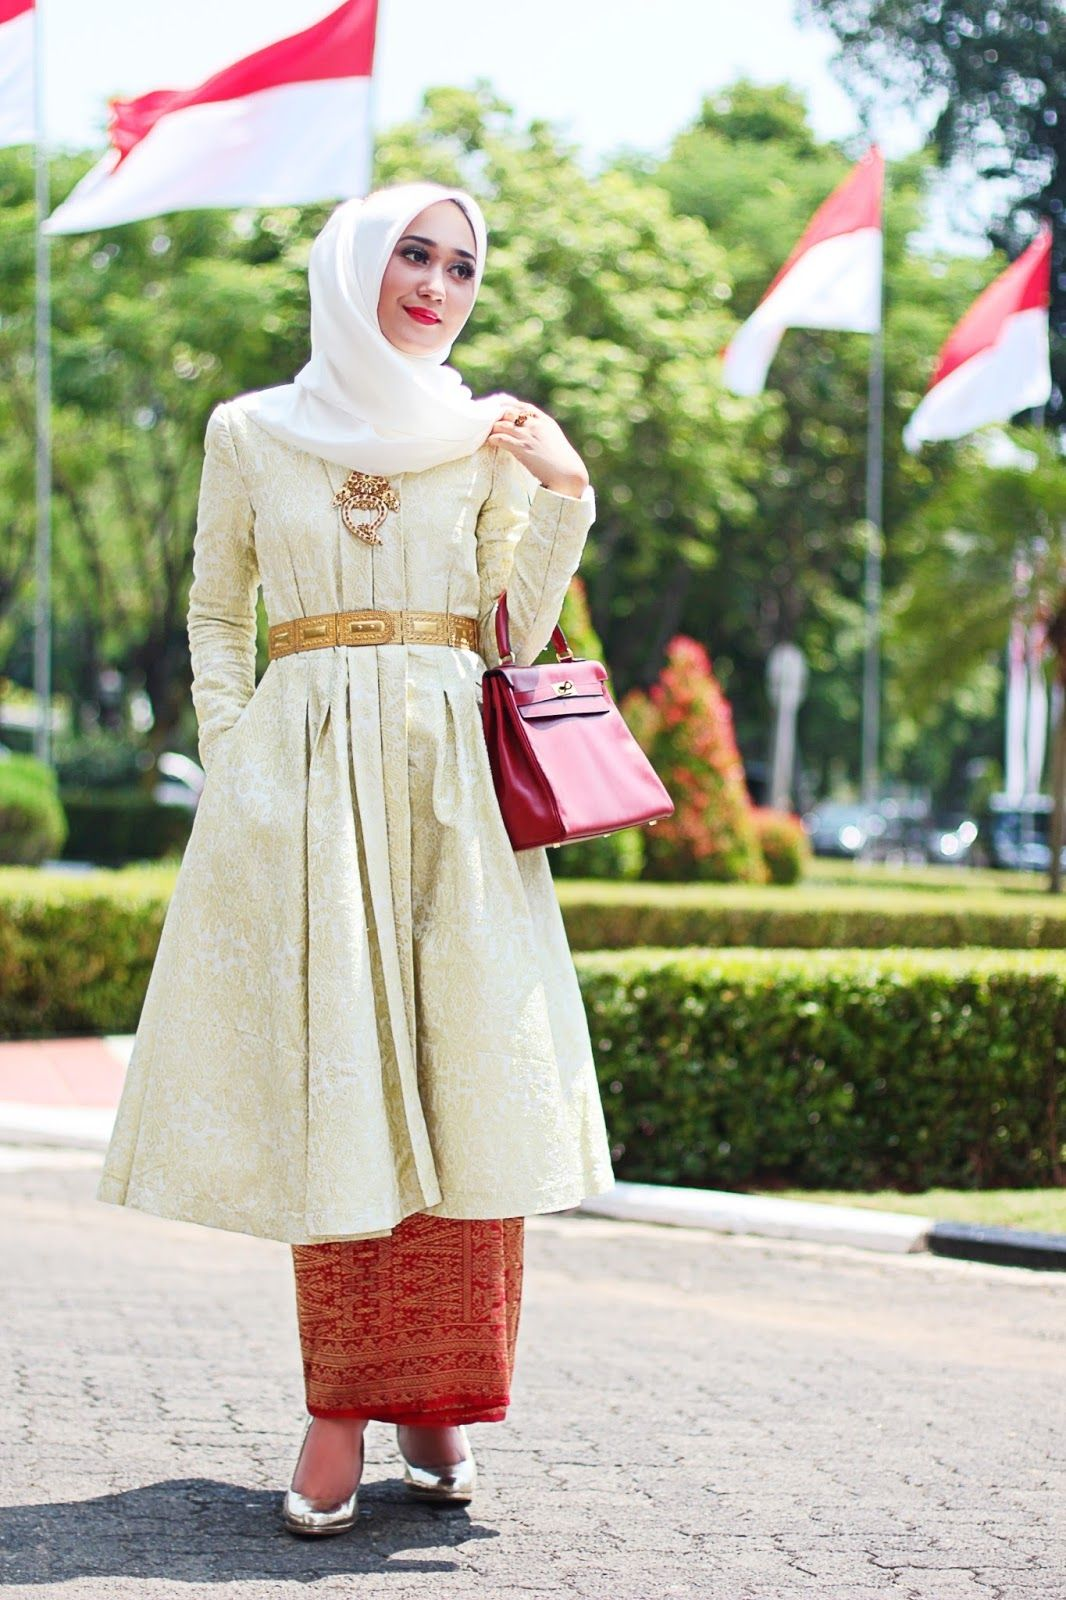 Dian Pelangi, one of famous moslem young designer from Indonesia